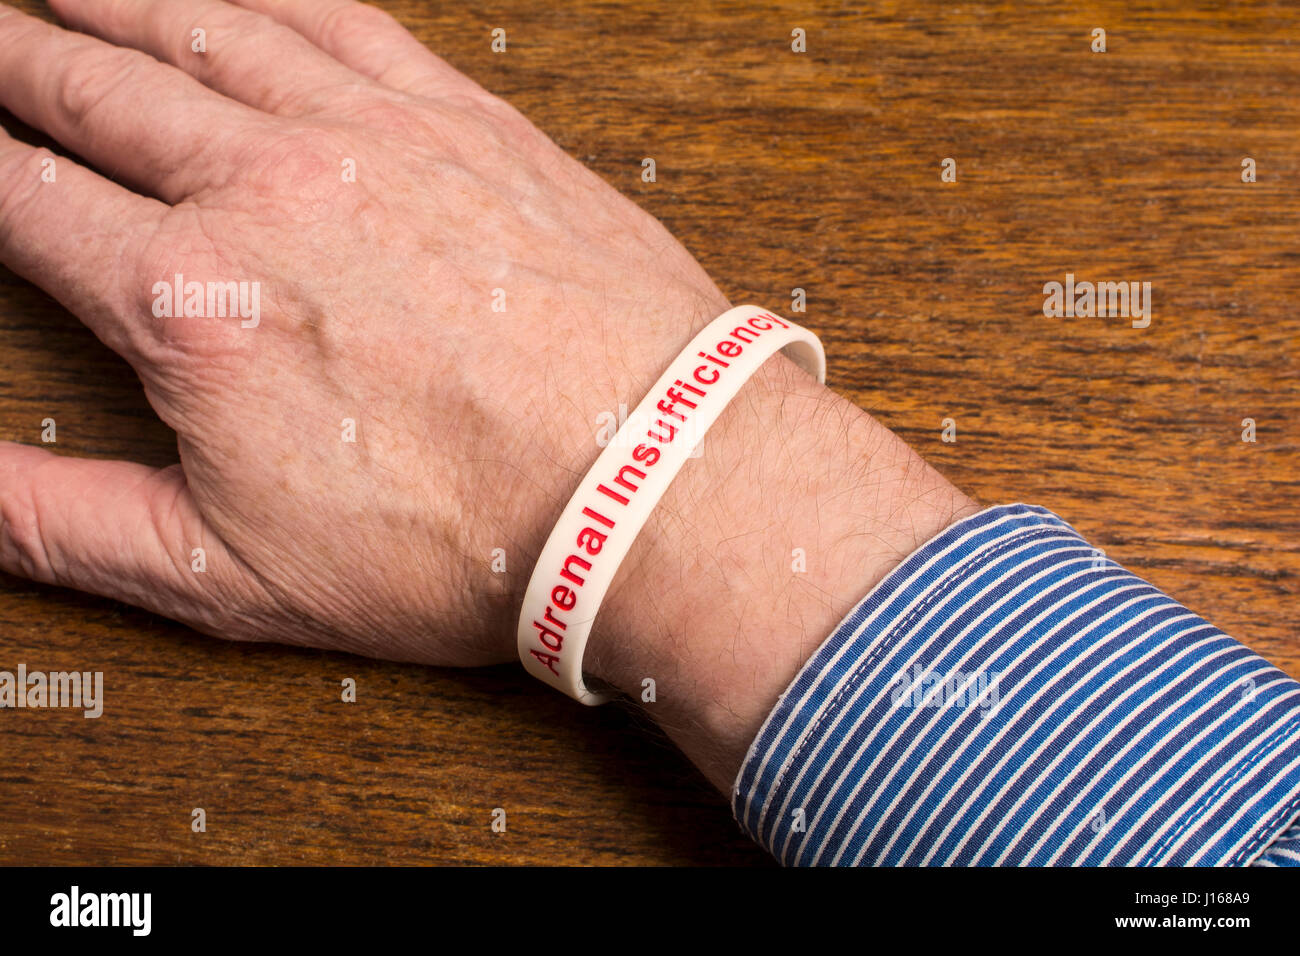 A medical alert wristband on a man's wrist - Adrenal Insufficiency - Stock Image